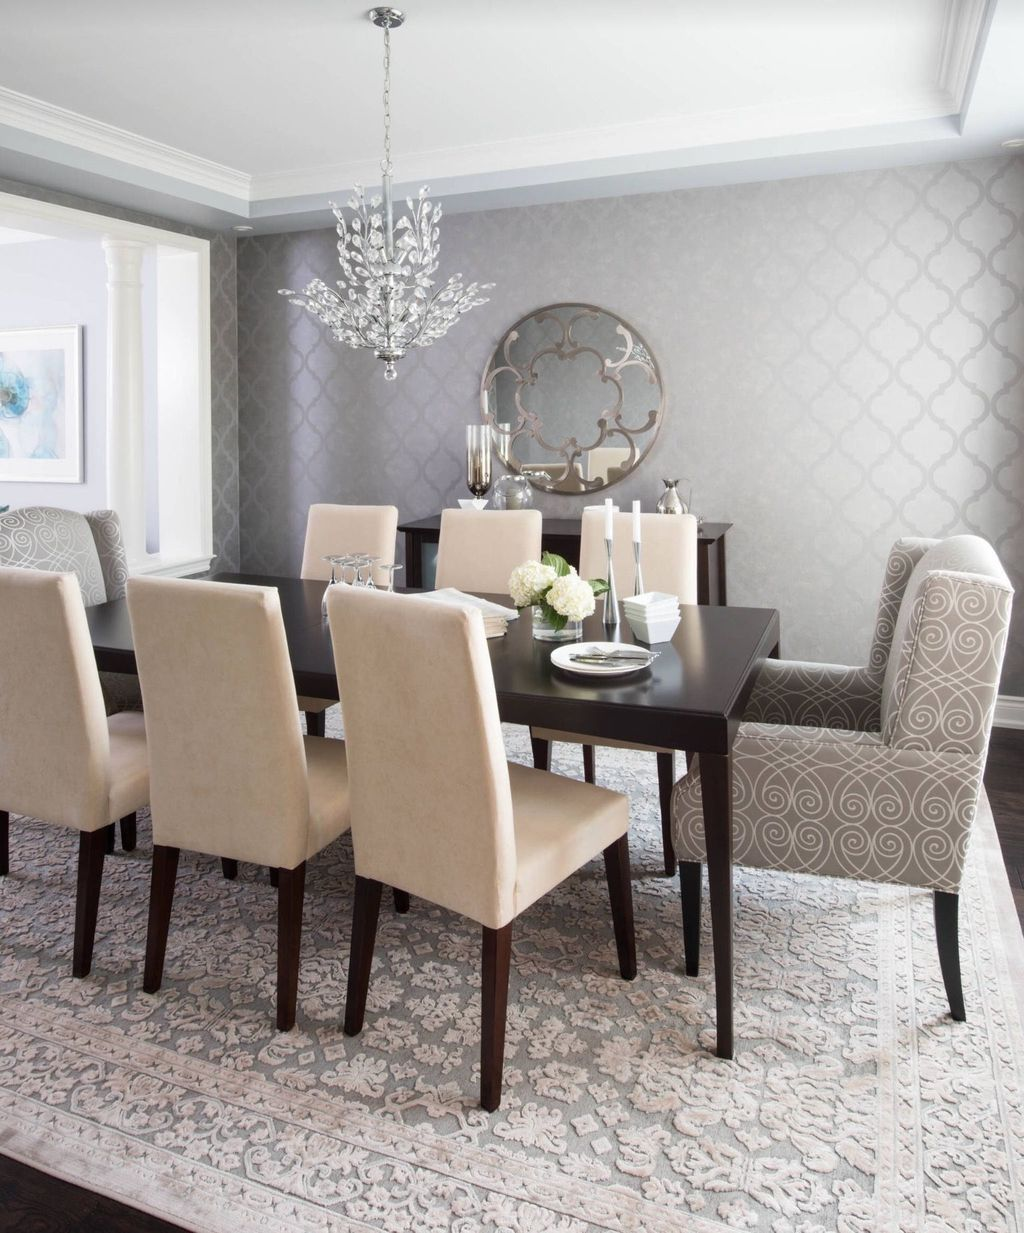 20 Wonderful Contemporary Dining Room Decorating Ideas To Try